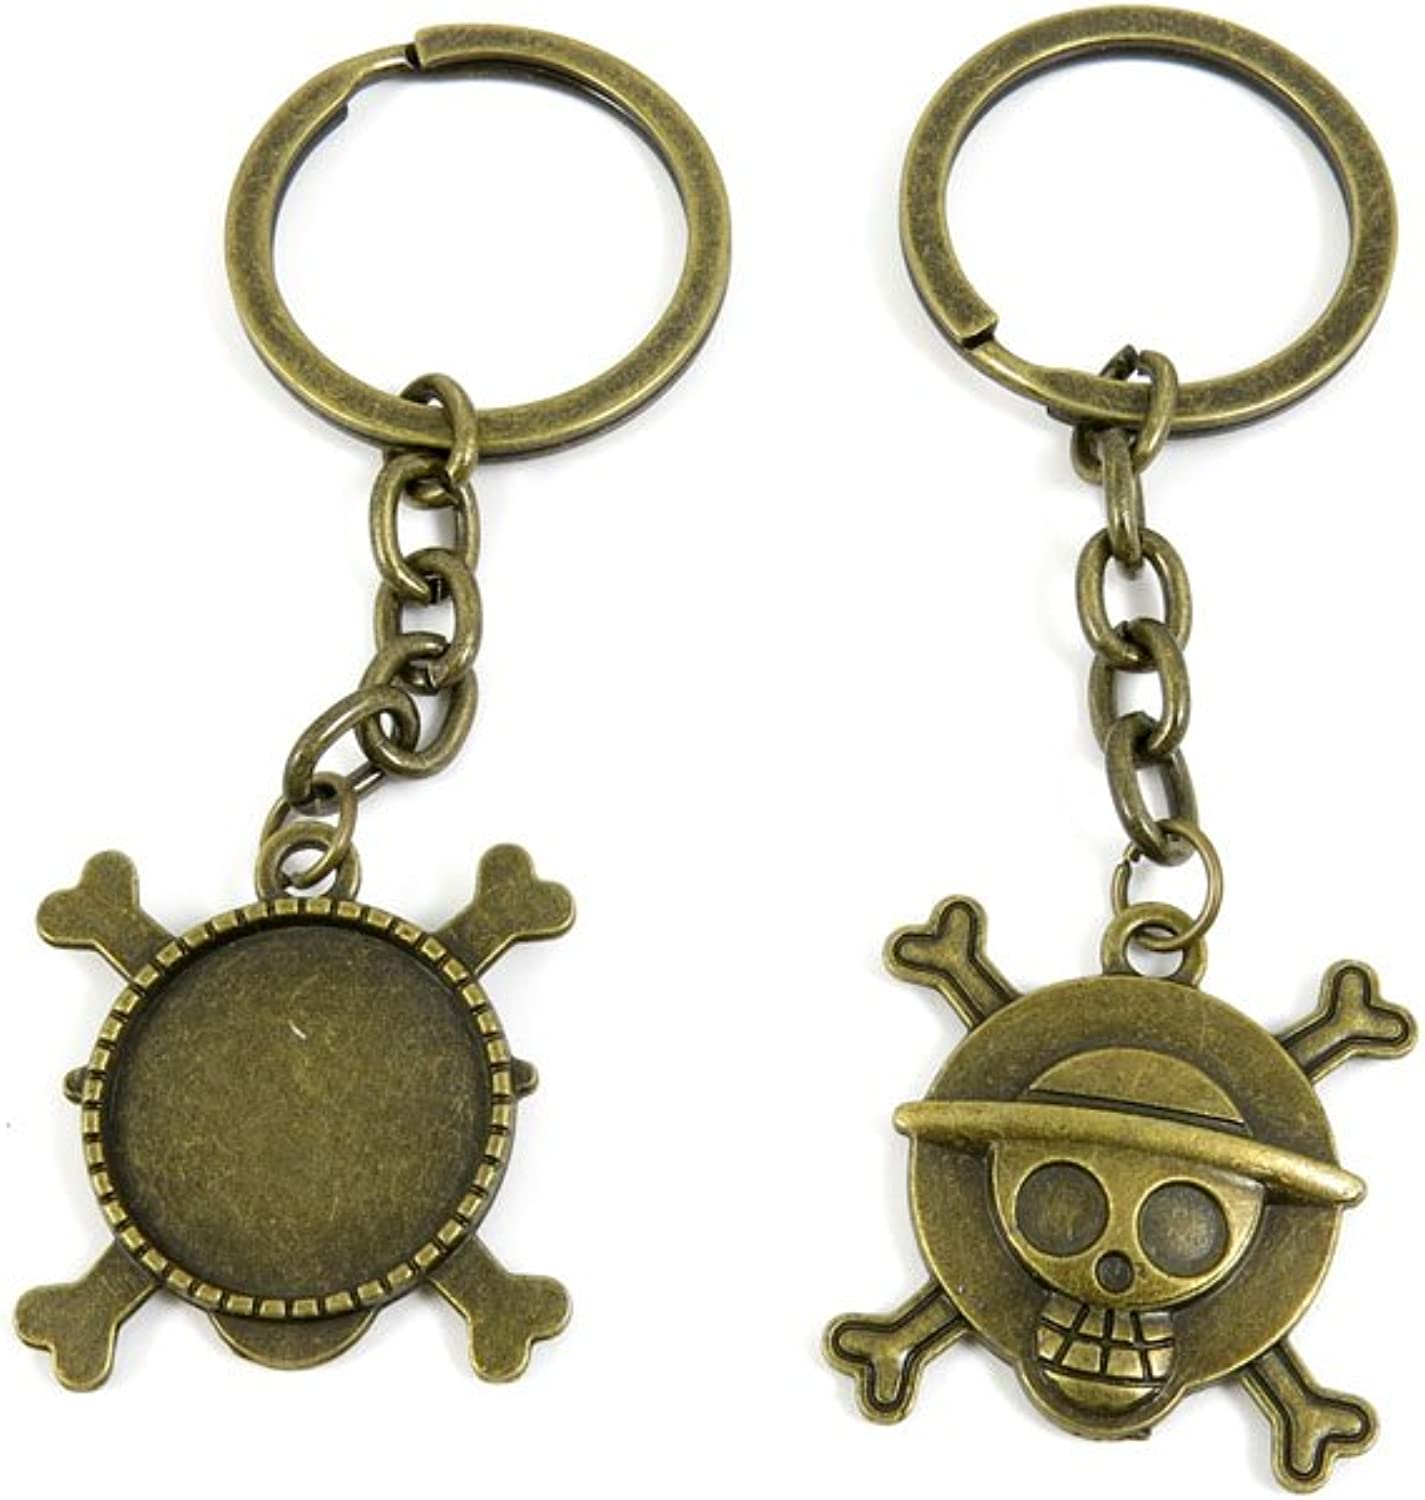 80 PCS Keyring Car Door Key Ring Tag Chain Keychain Wholesale Suppliers Charms Handmade D6CS6 Skull Cabochon Setting Blanks